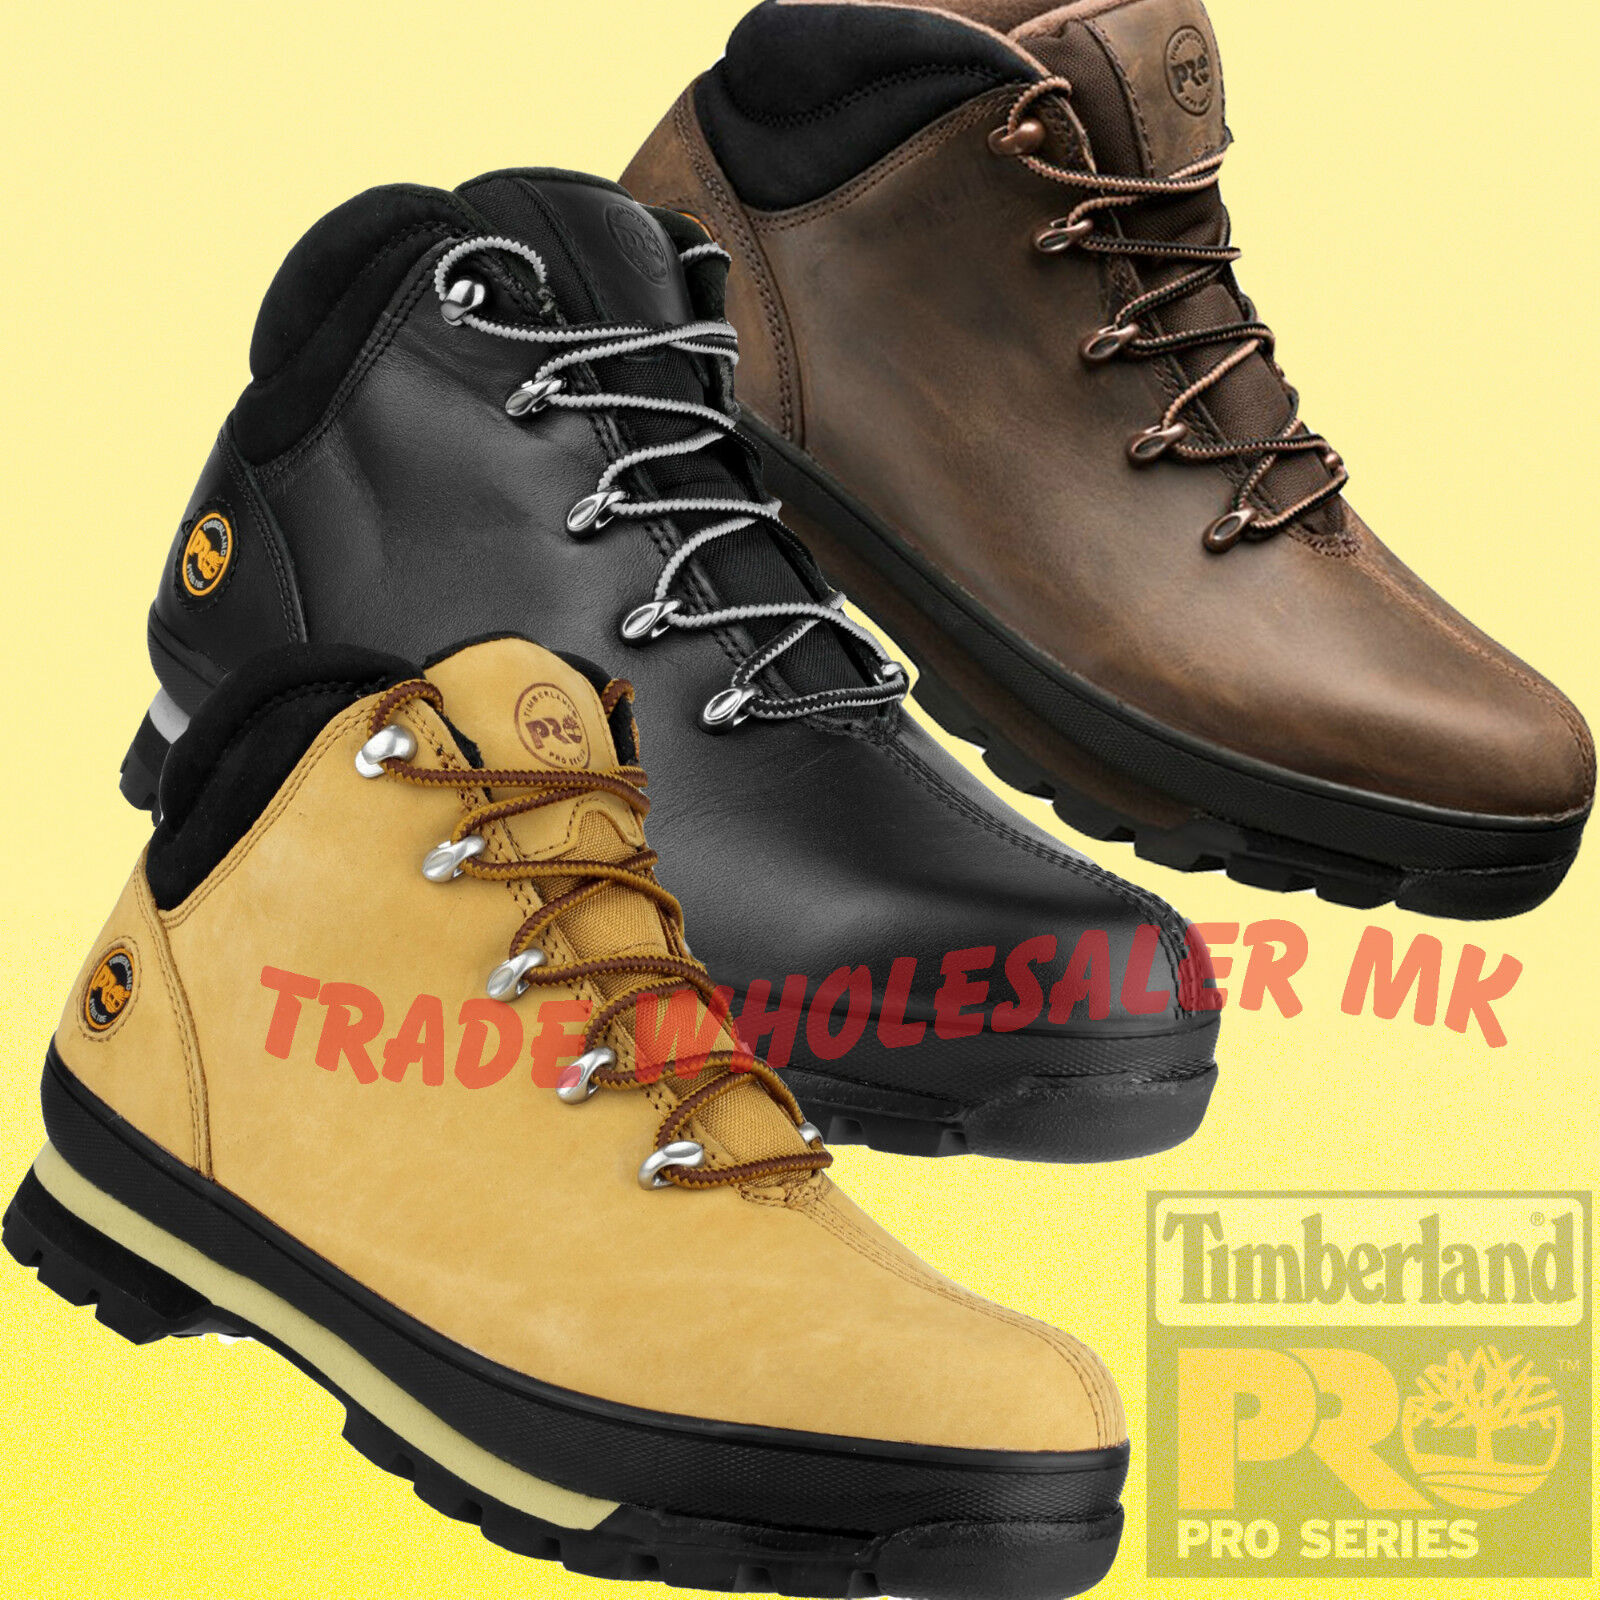 90f348e4703 Details about Timberland Pro Splitrock Work Safety Boots Hiker, Honey  (Wheat), Black, Gaucho